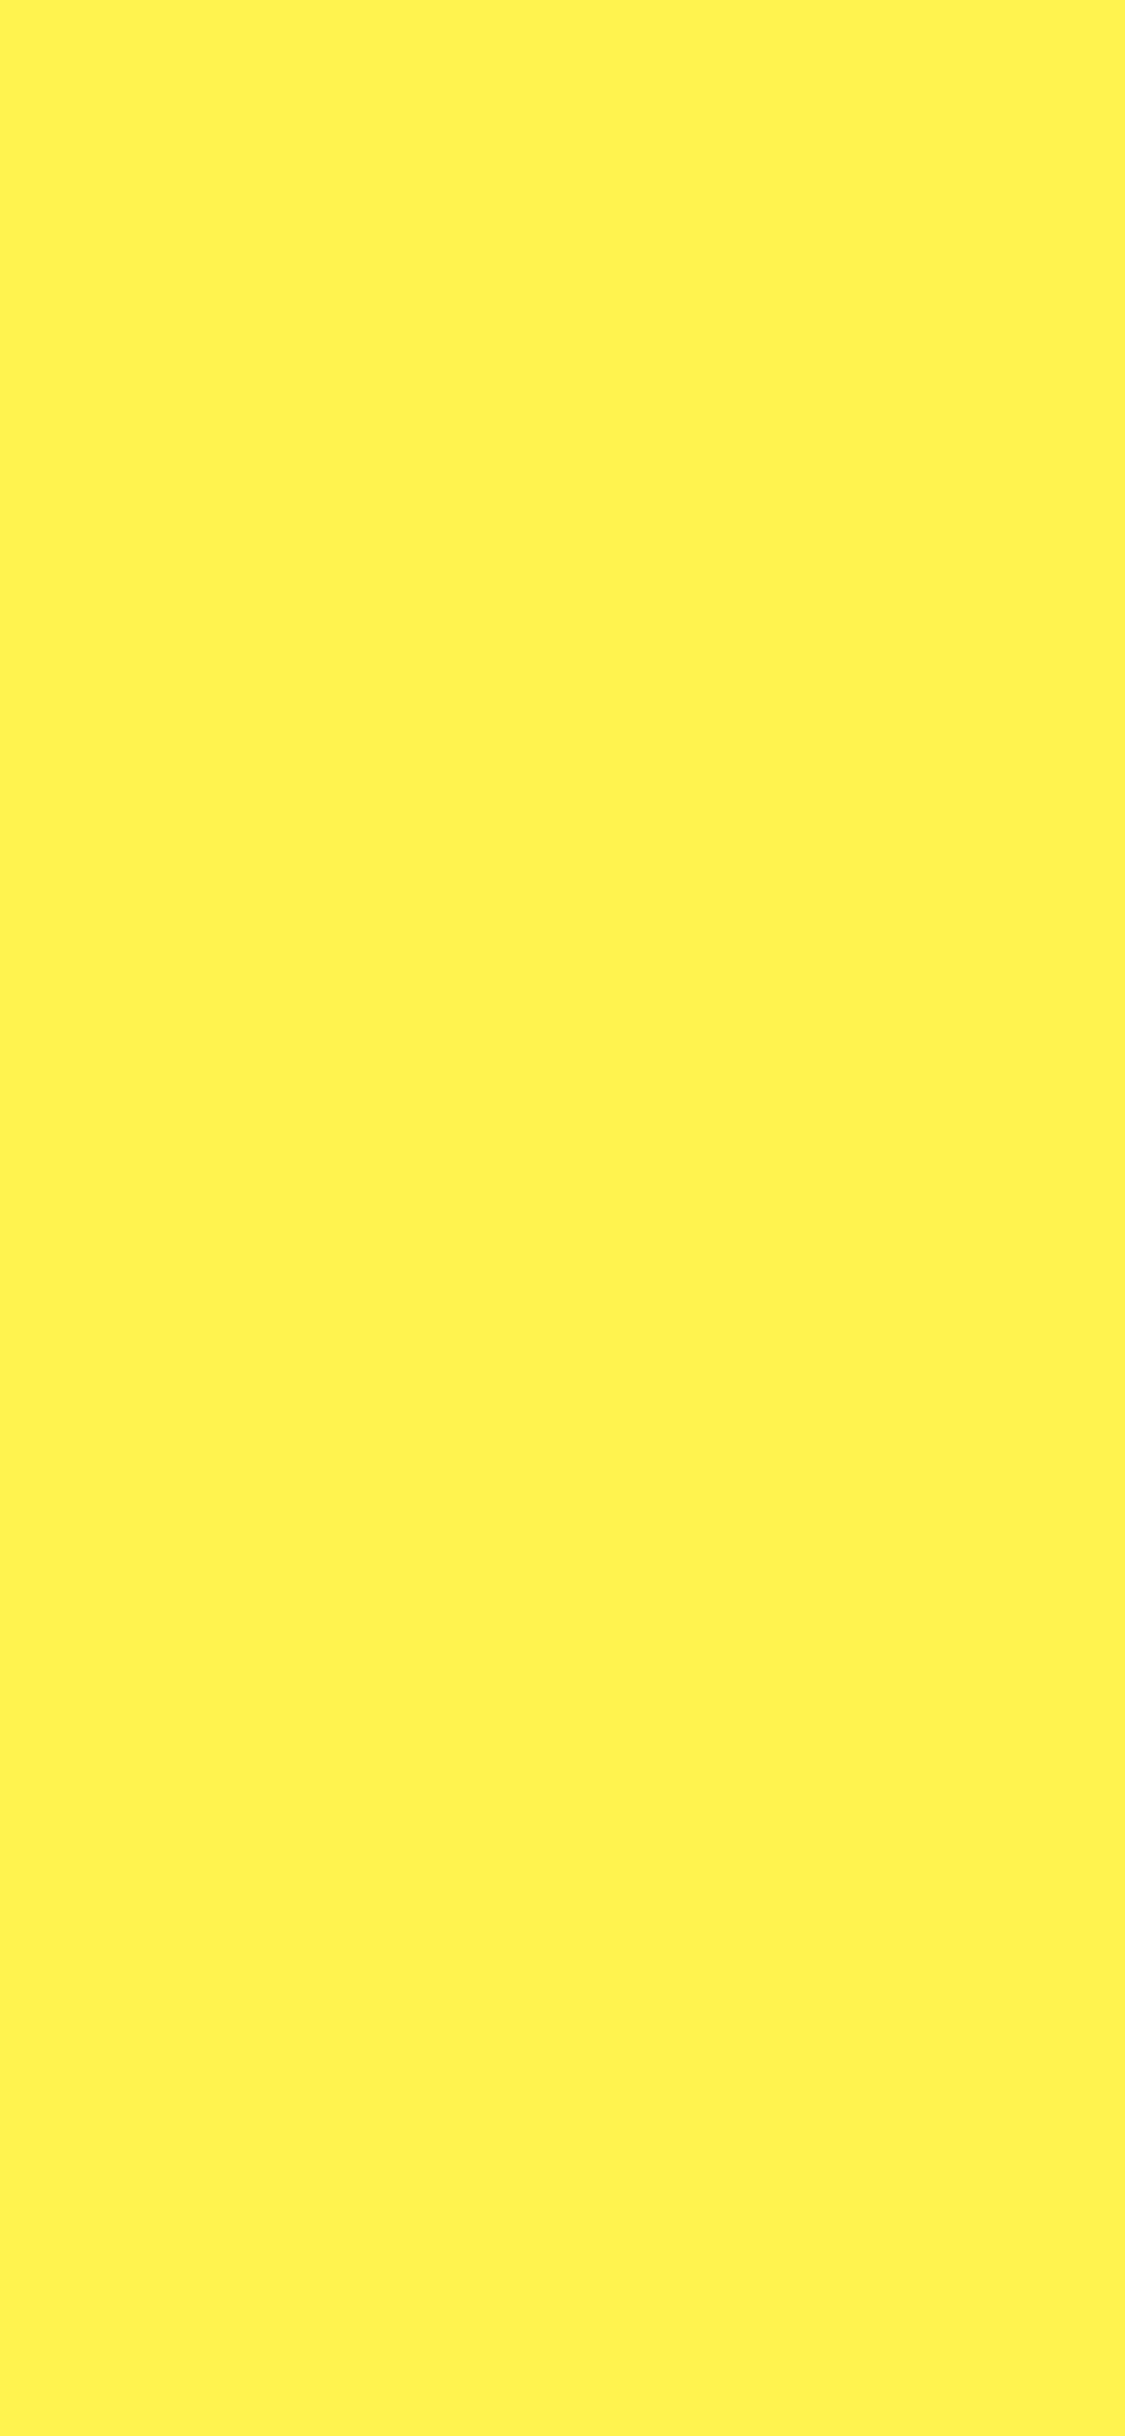 1125x2436 Lemon Yellow Solid Color Background